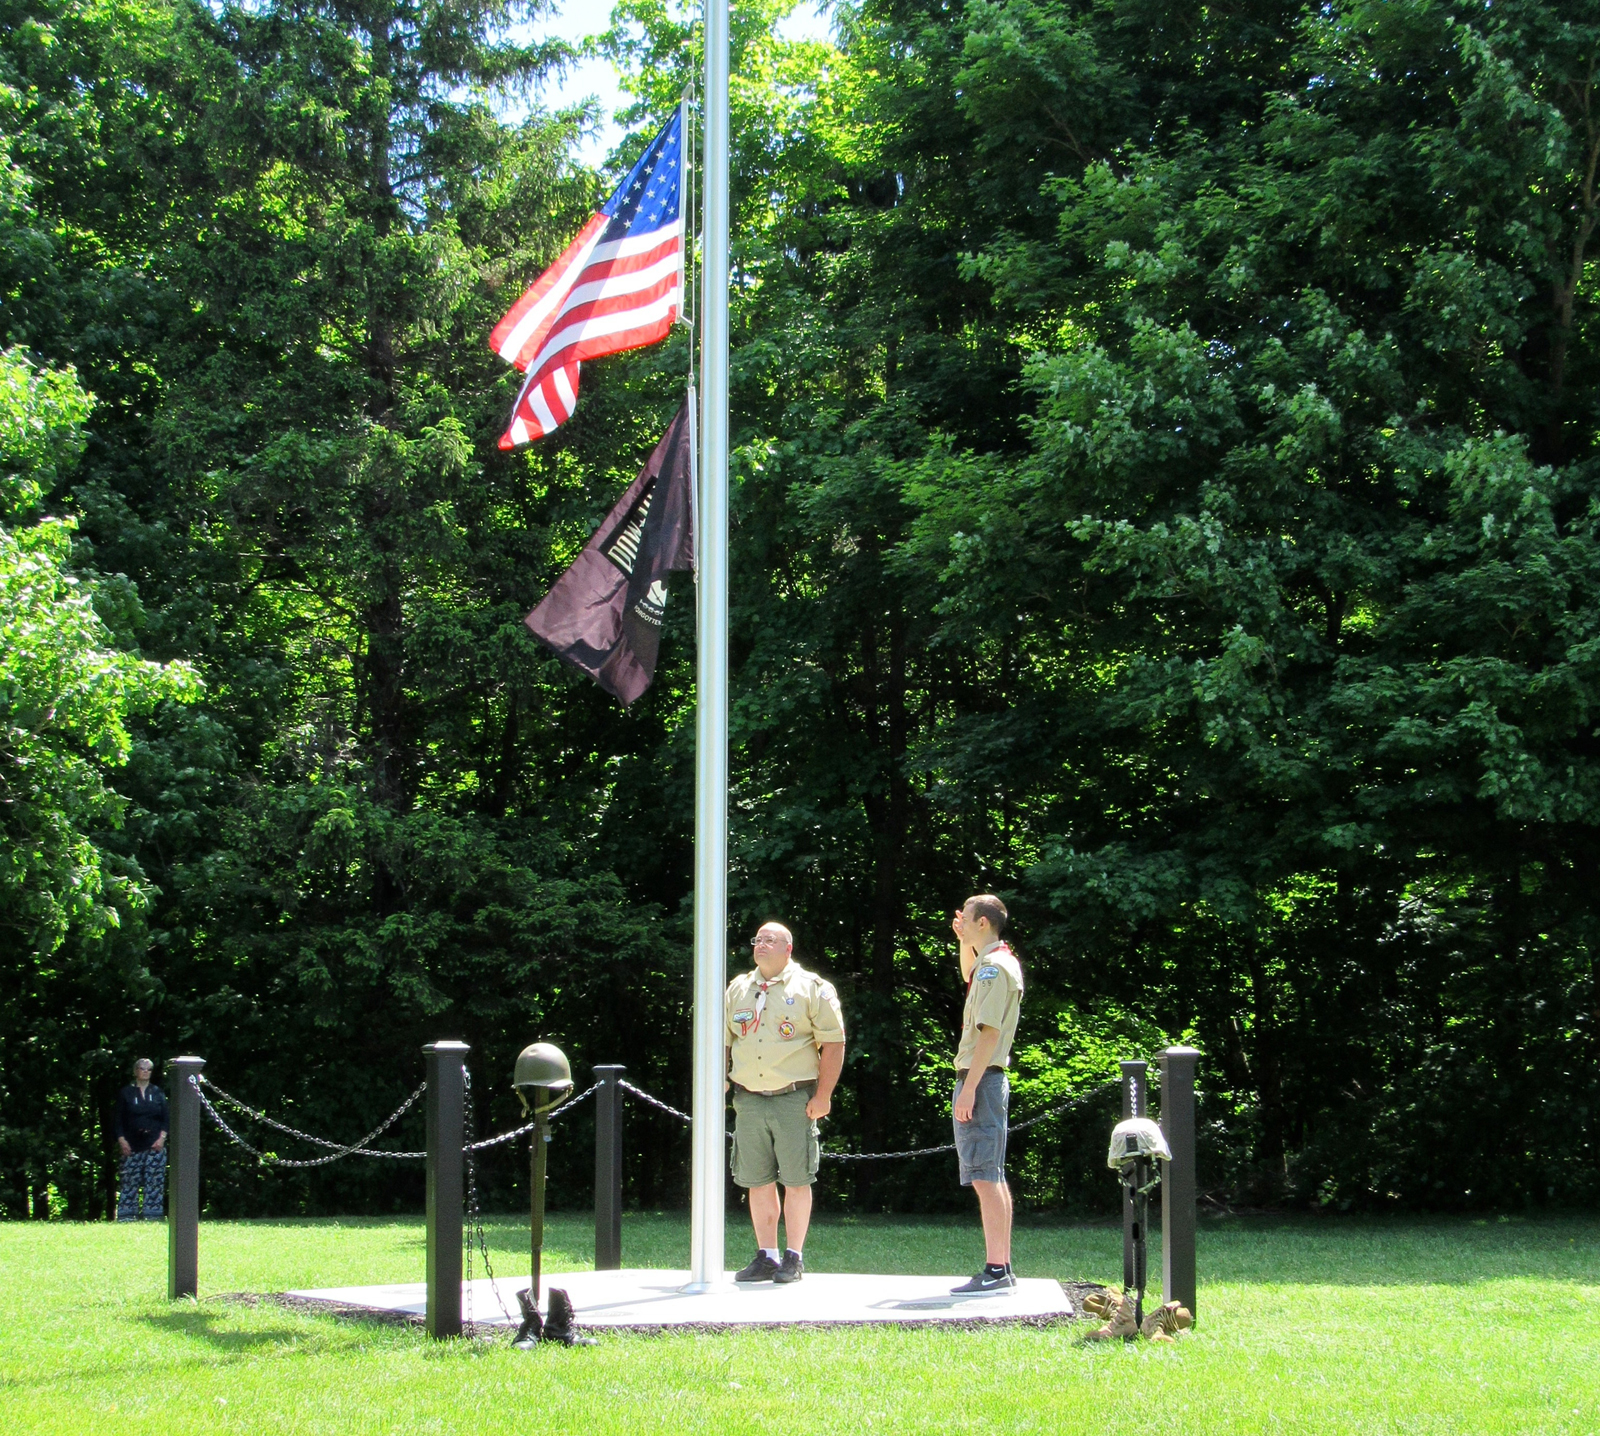 John and Jacob Crandall salute after raising the U.S. Flag and POW/MIA Flag at the new Memorial in Hillside Cemetery on Memorial Day. K. Gabalski photo